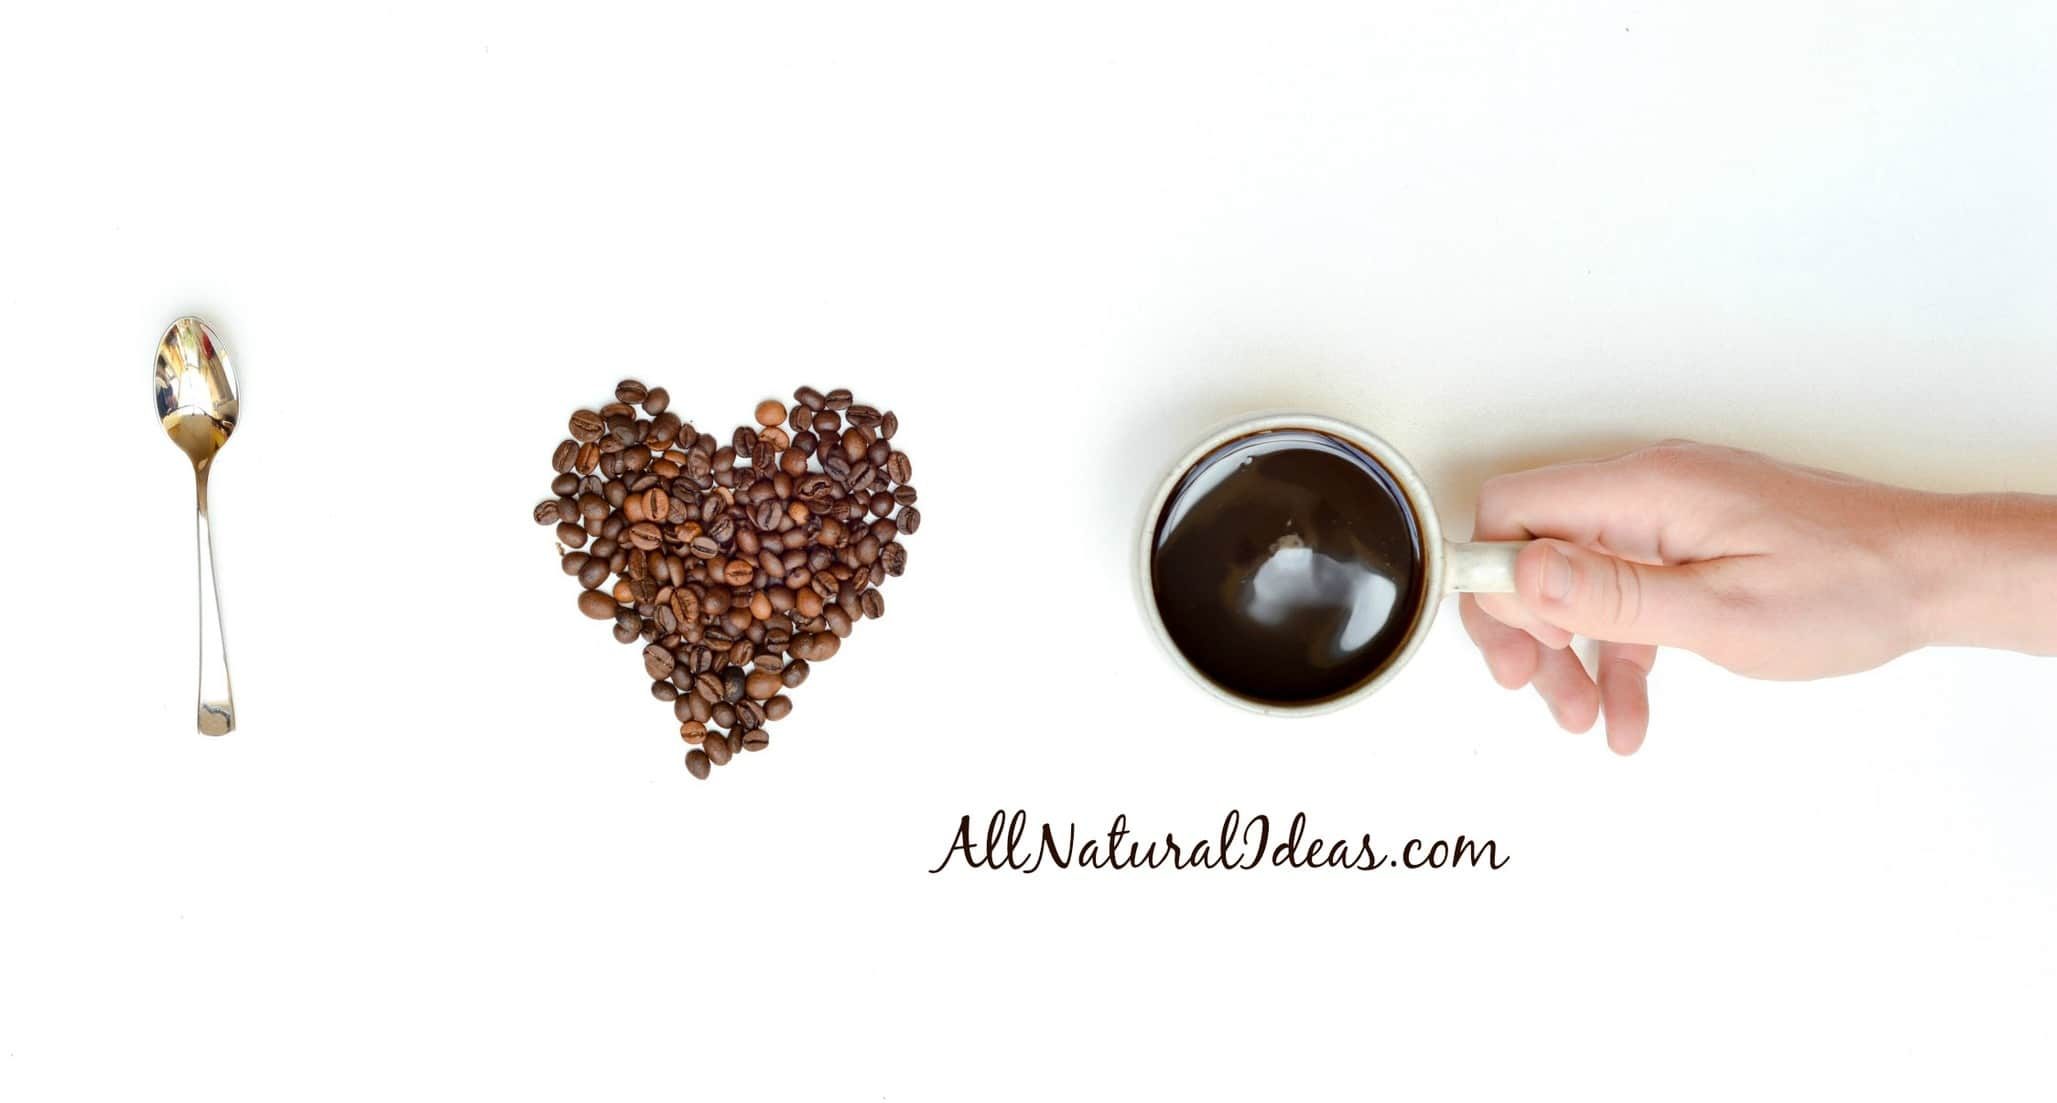 Studies show coffee health benefits